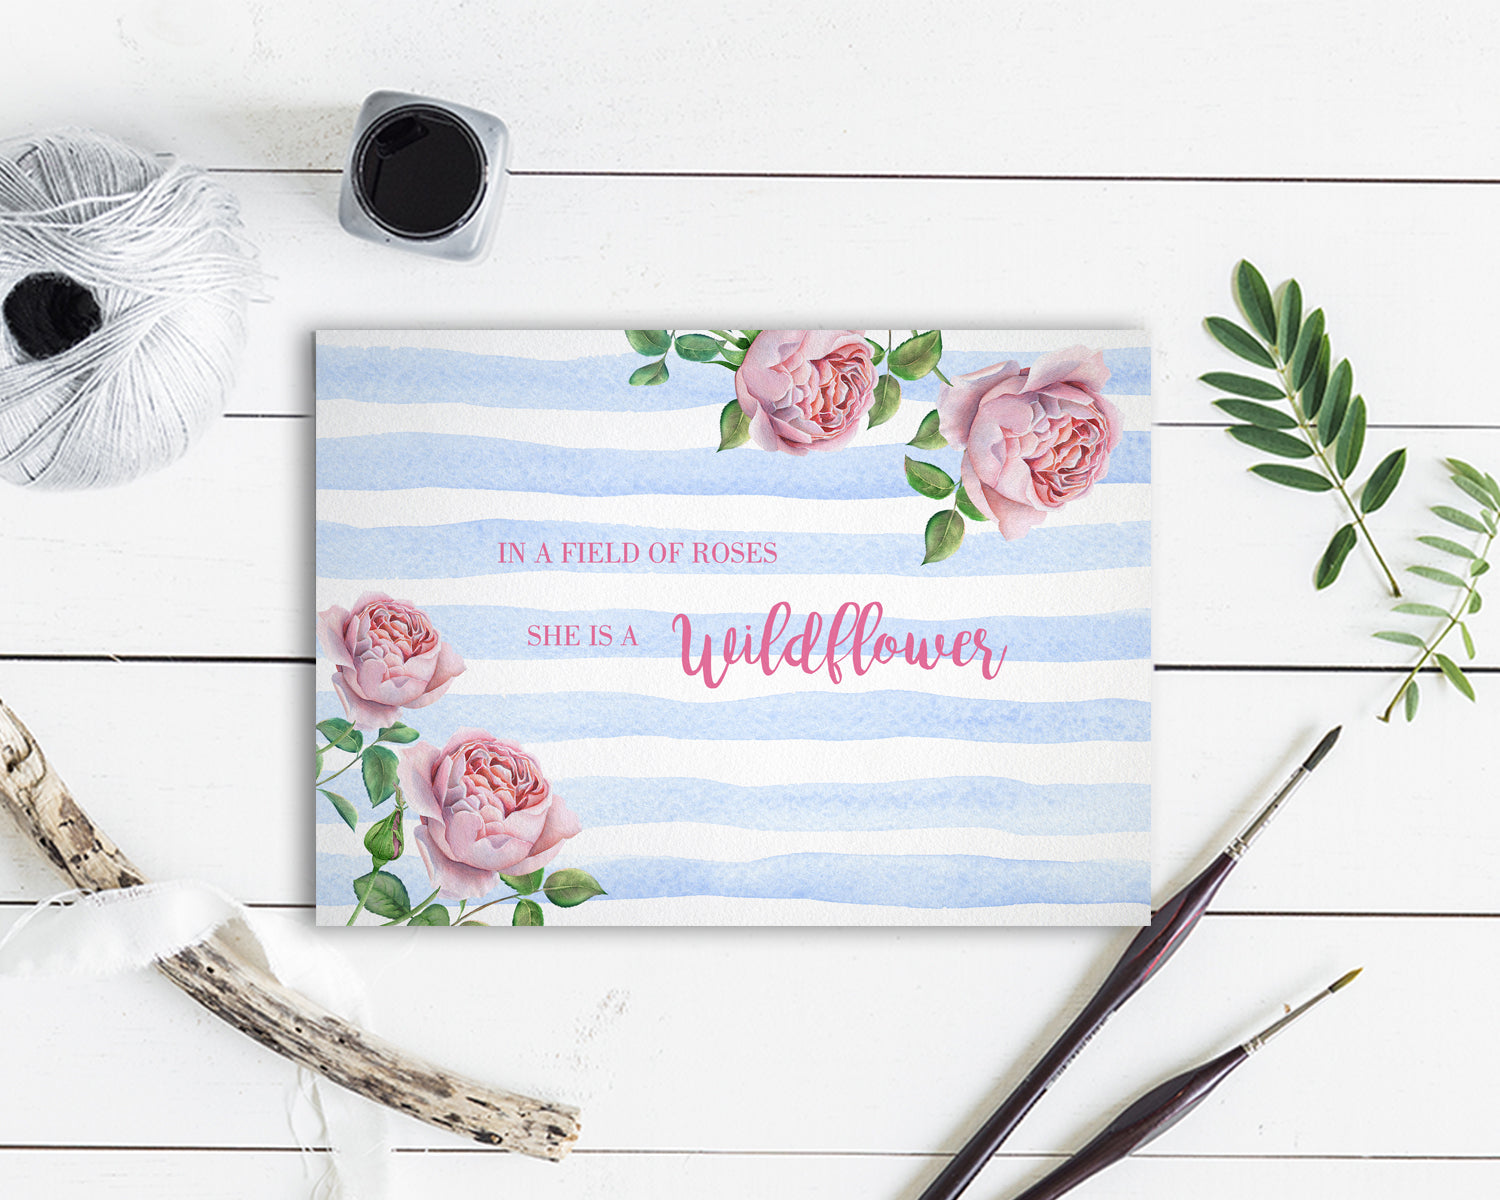 In a field of roses she is a wildflower Flower Quote Customized Gift Cards